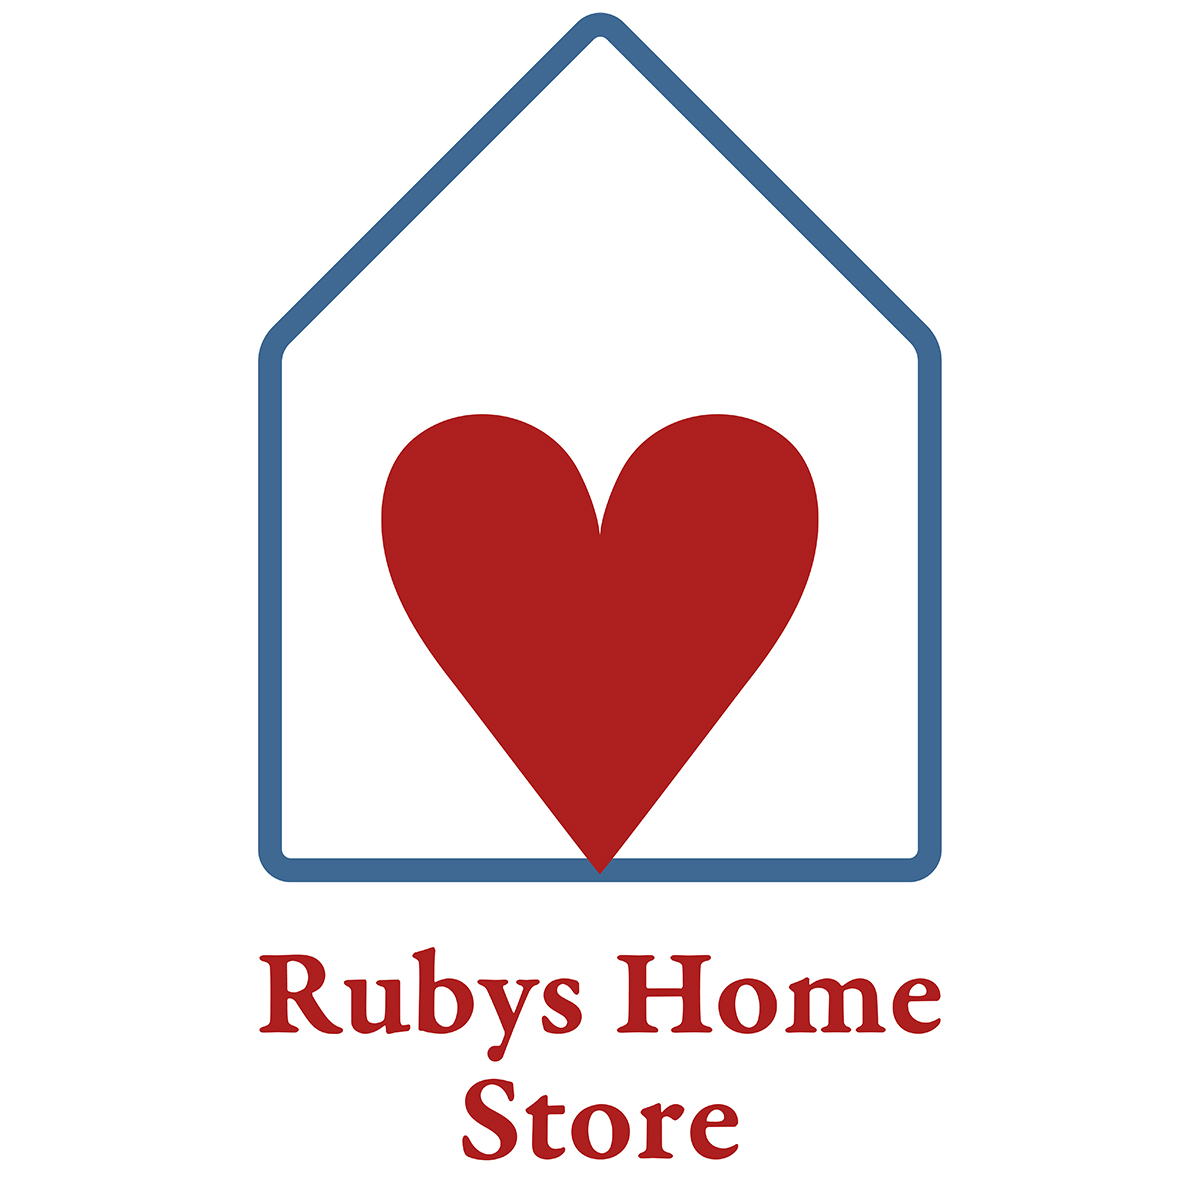 Rubys Home Store